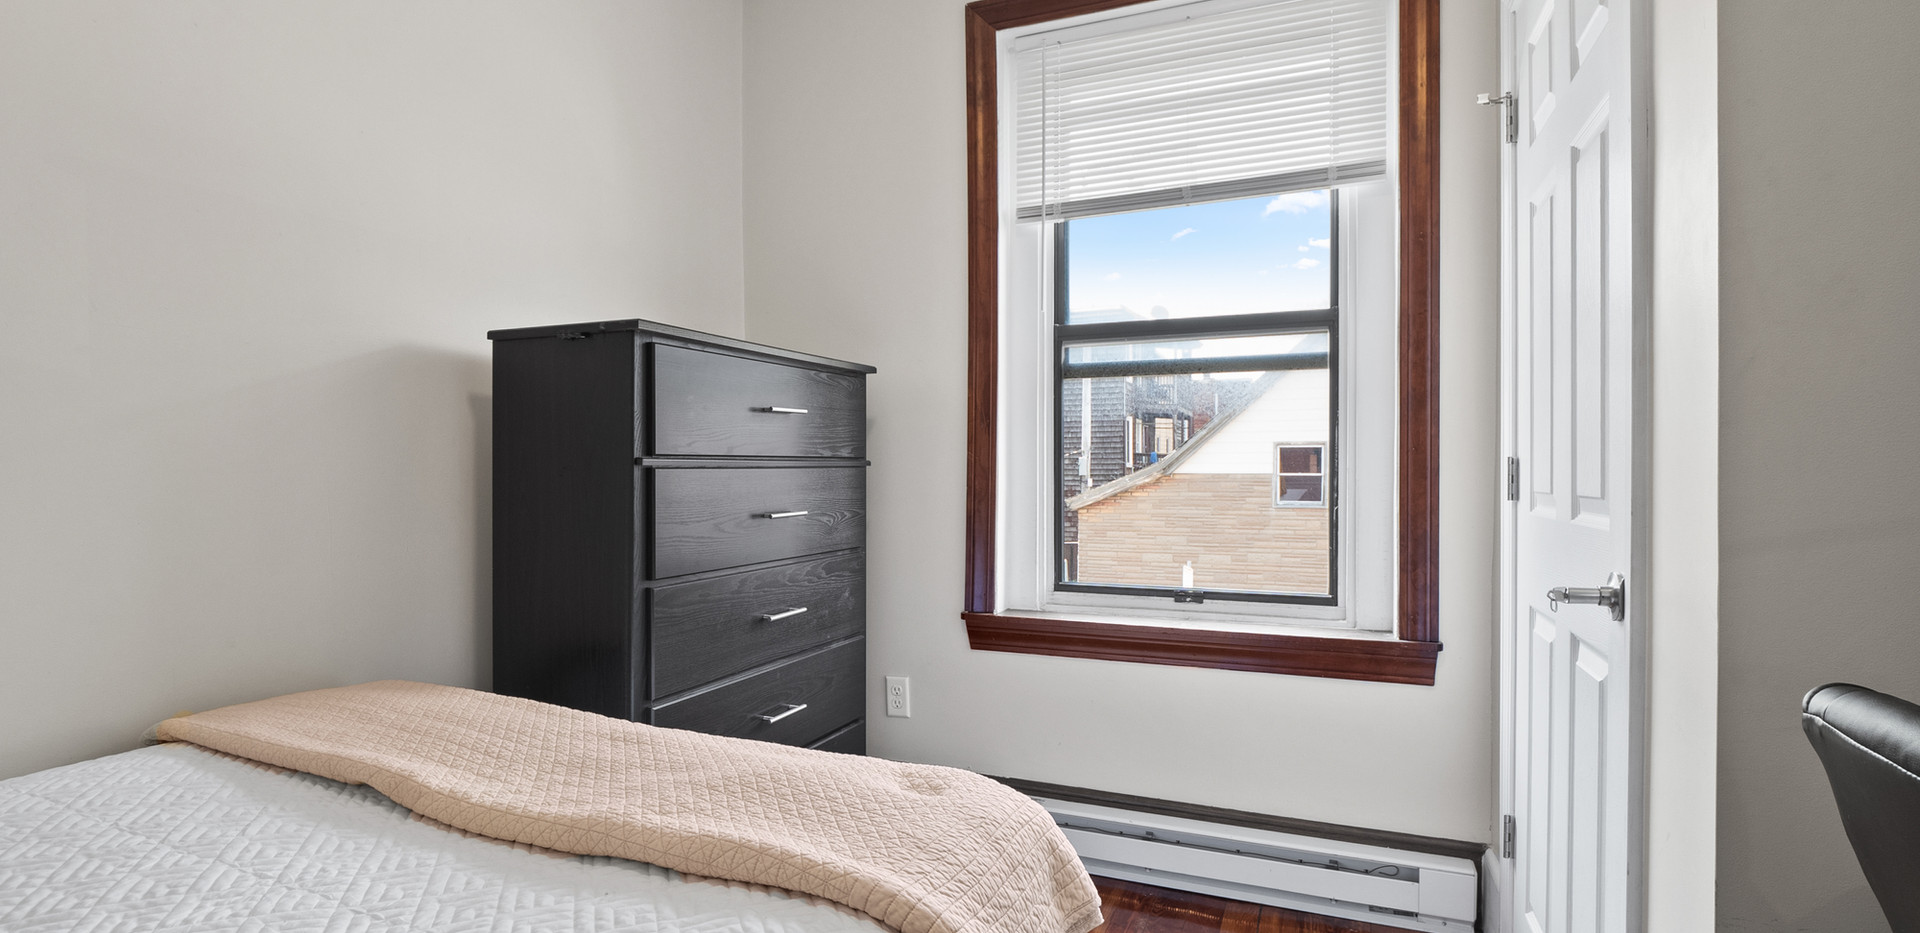 Bedroom C at 32 Shelby Unit 2